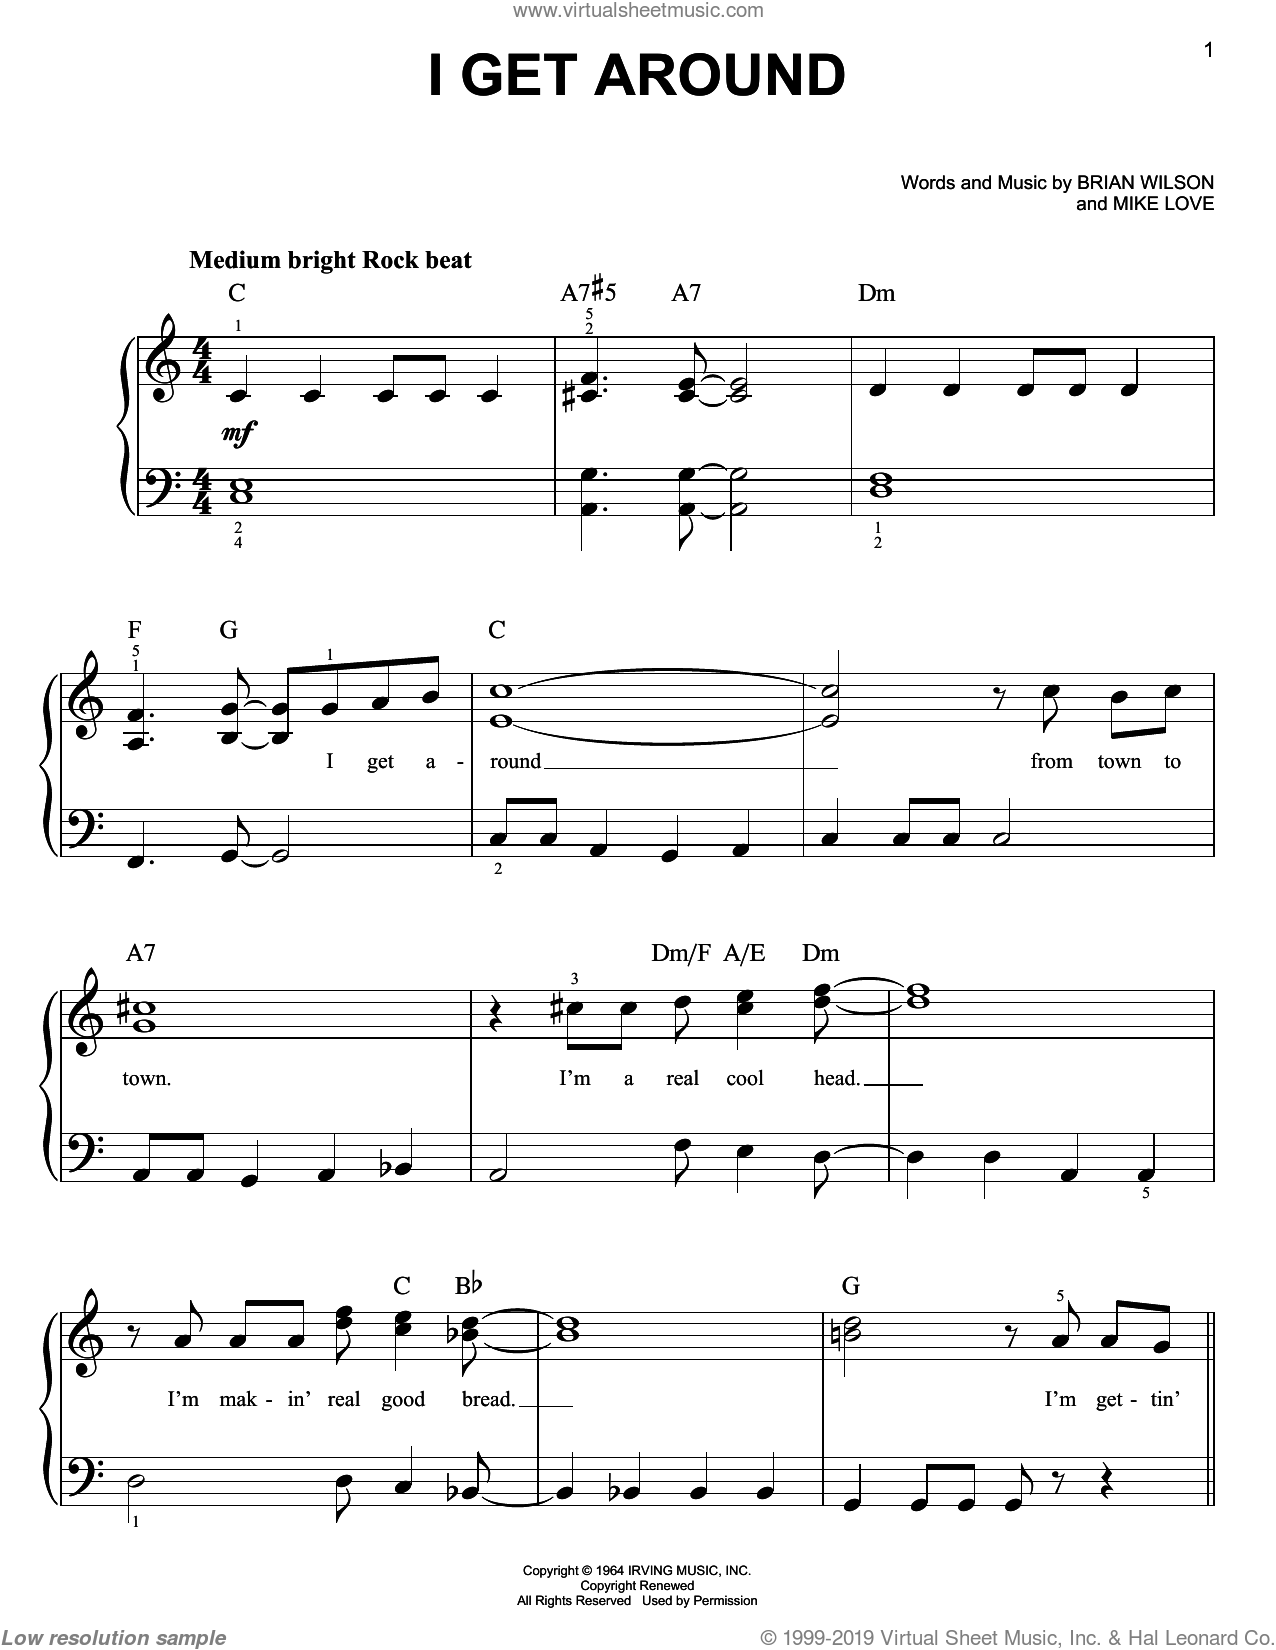 I Get Around sheet music for piano solo by The Beach Boys, Brian Wilson and Mike Love, easy skill level